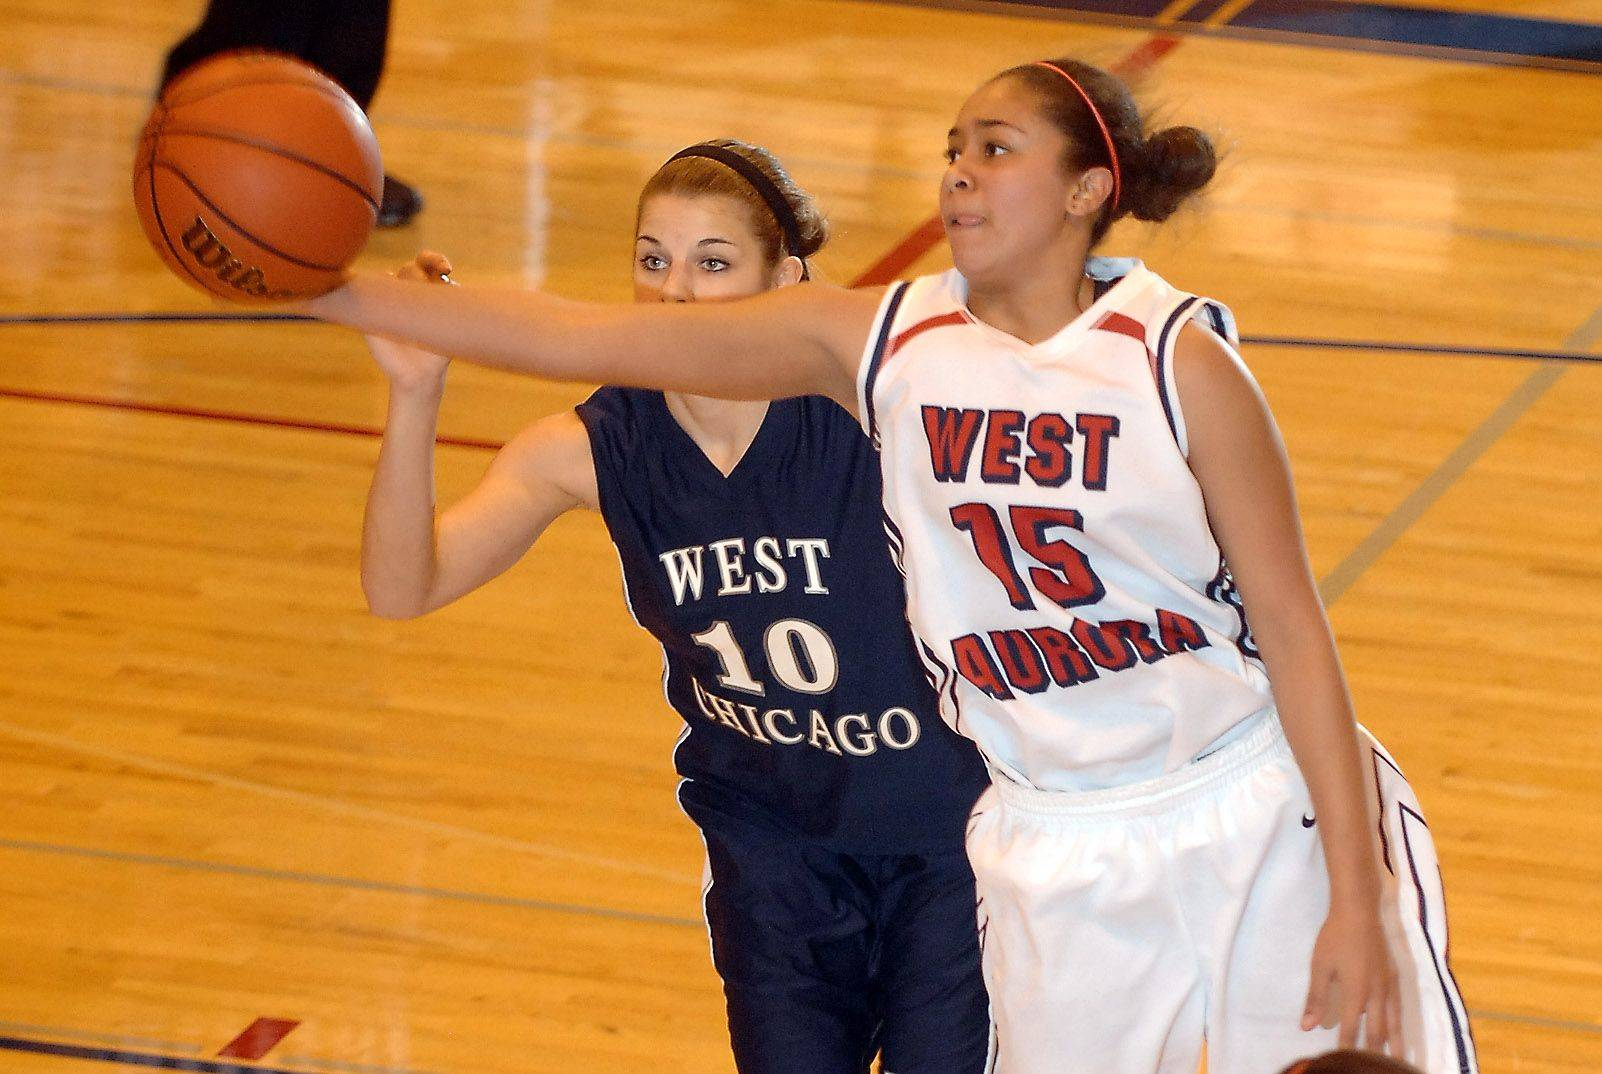 Images from the West Aurora vs. West Chicago girls basketball game Thursday, January 6, 2011.